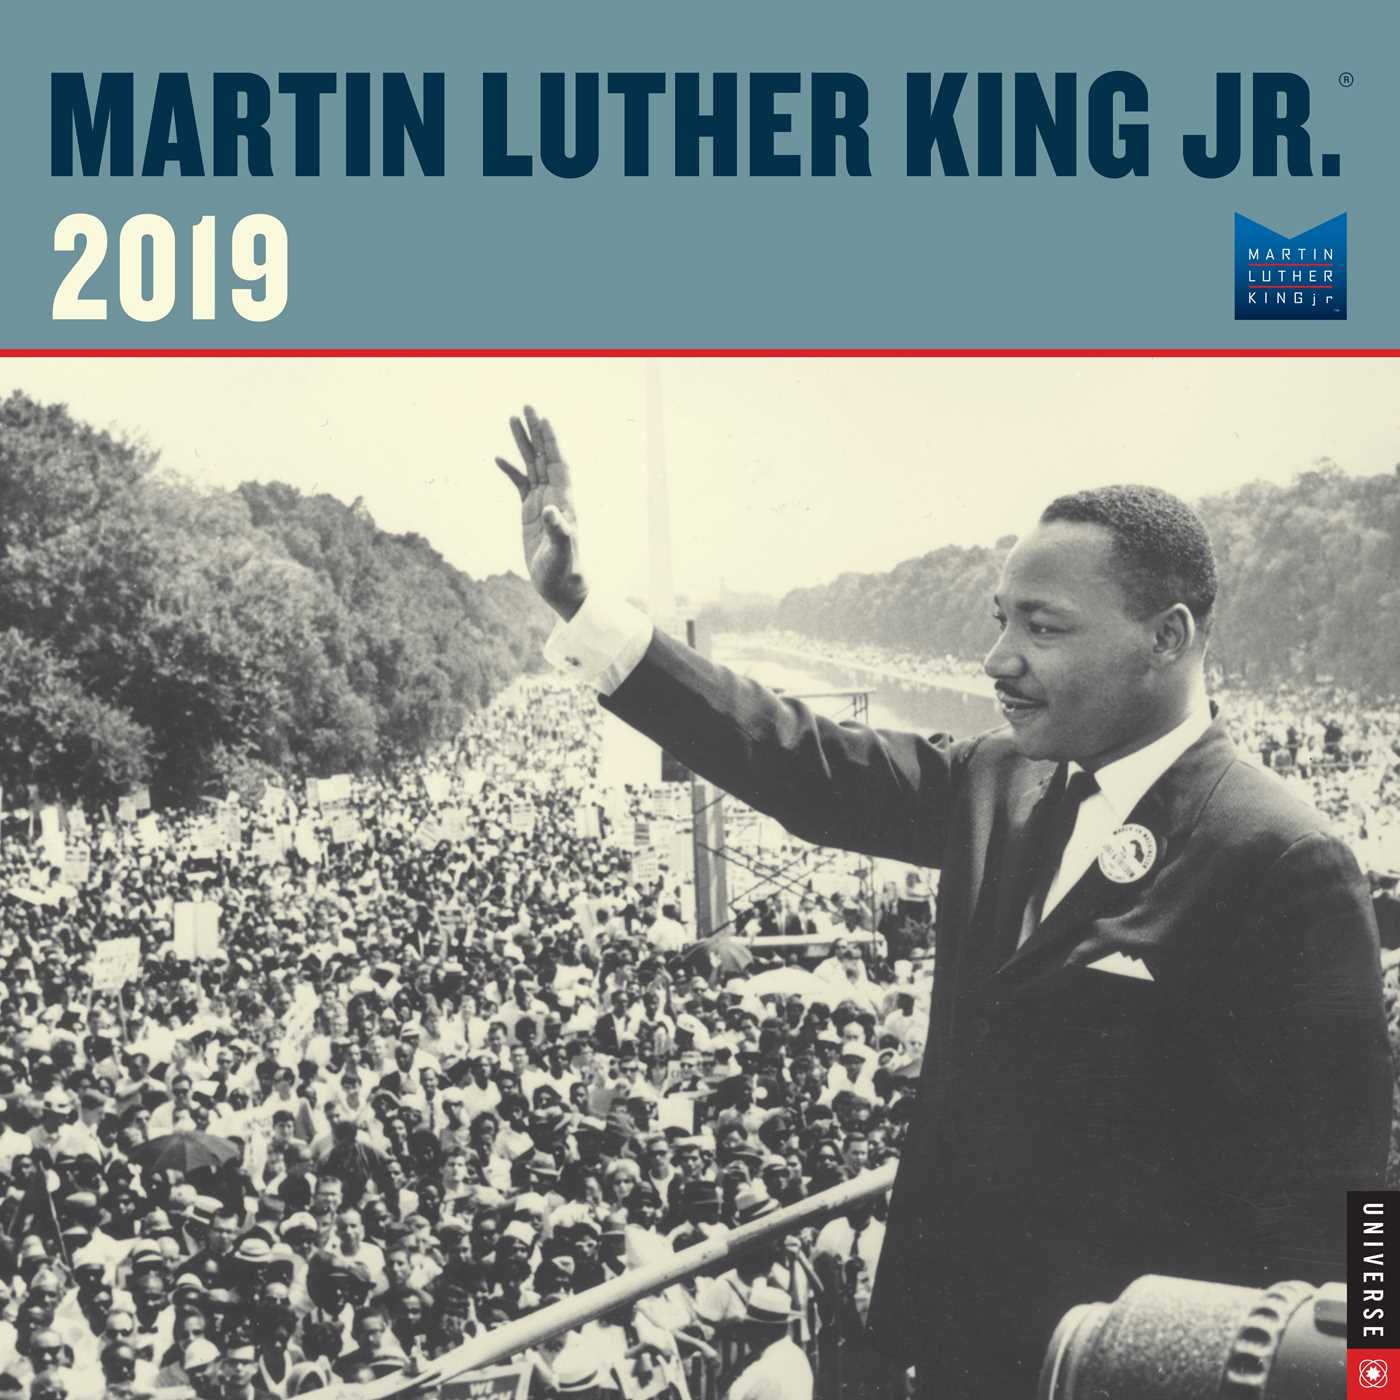 Martin Luther King 2019 Calendar Martin Luther King Jr. 2019 Wall Calendar: The Martin Luther King